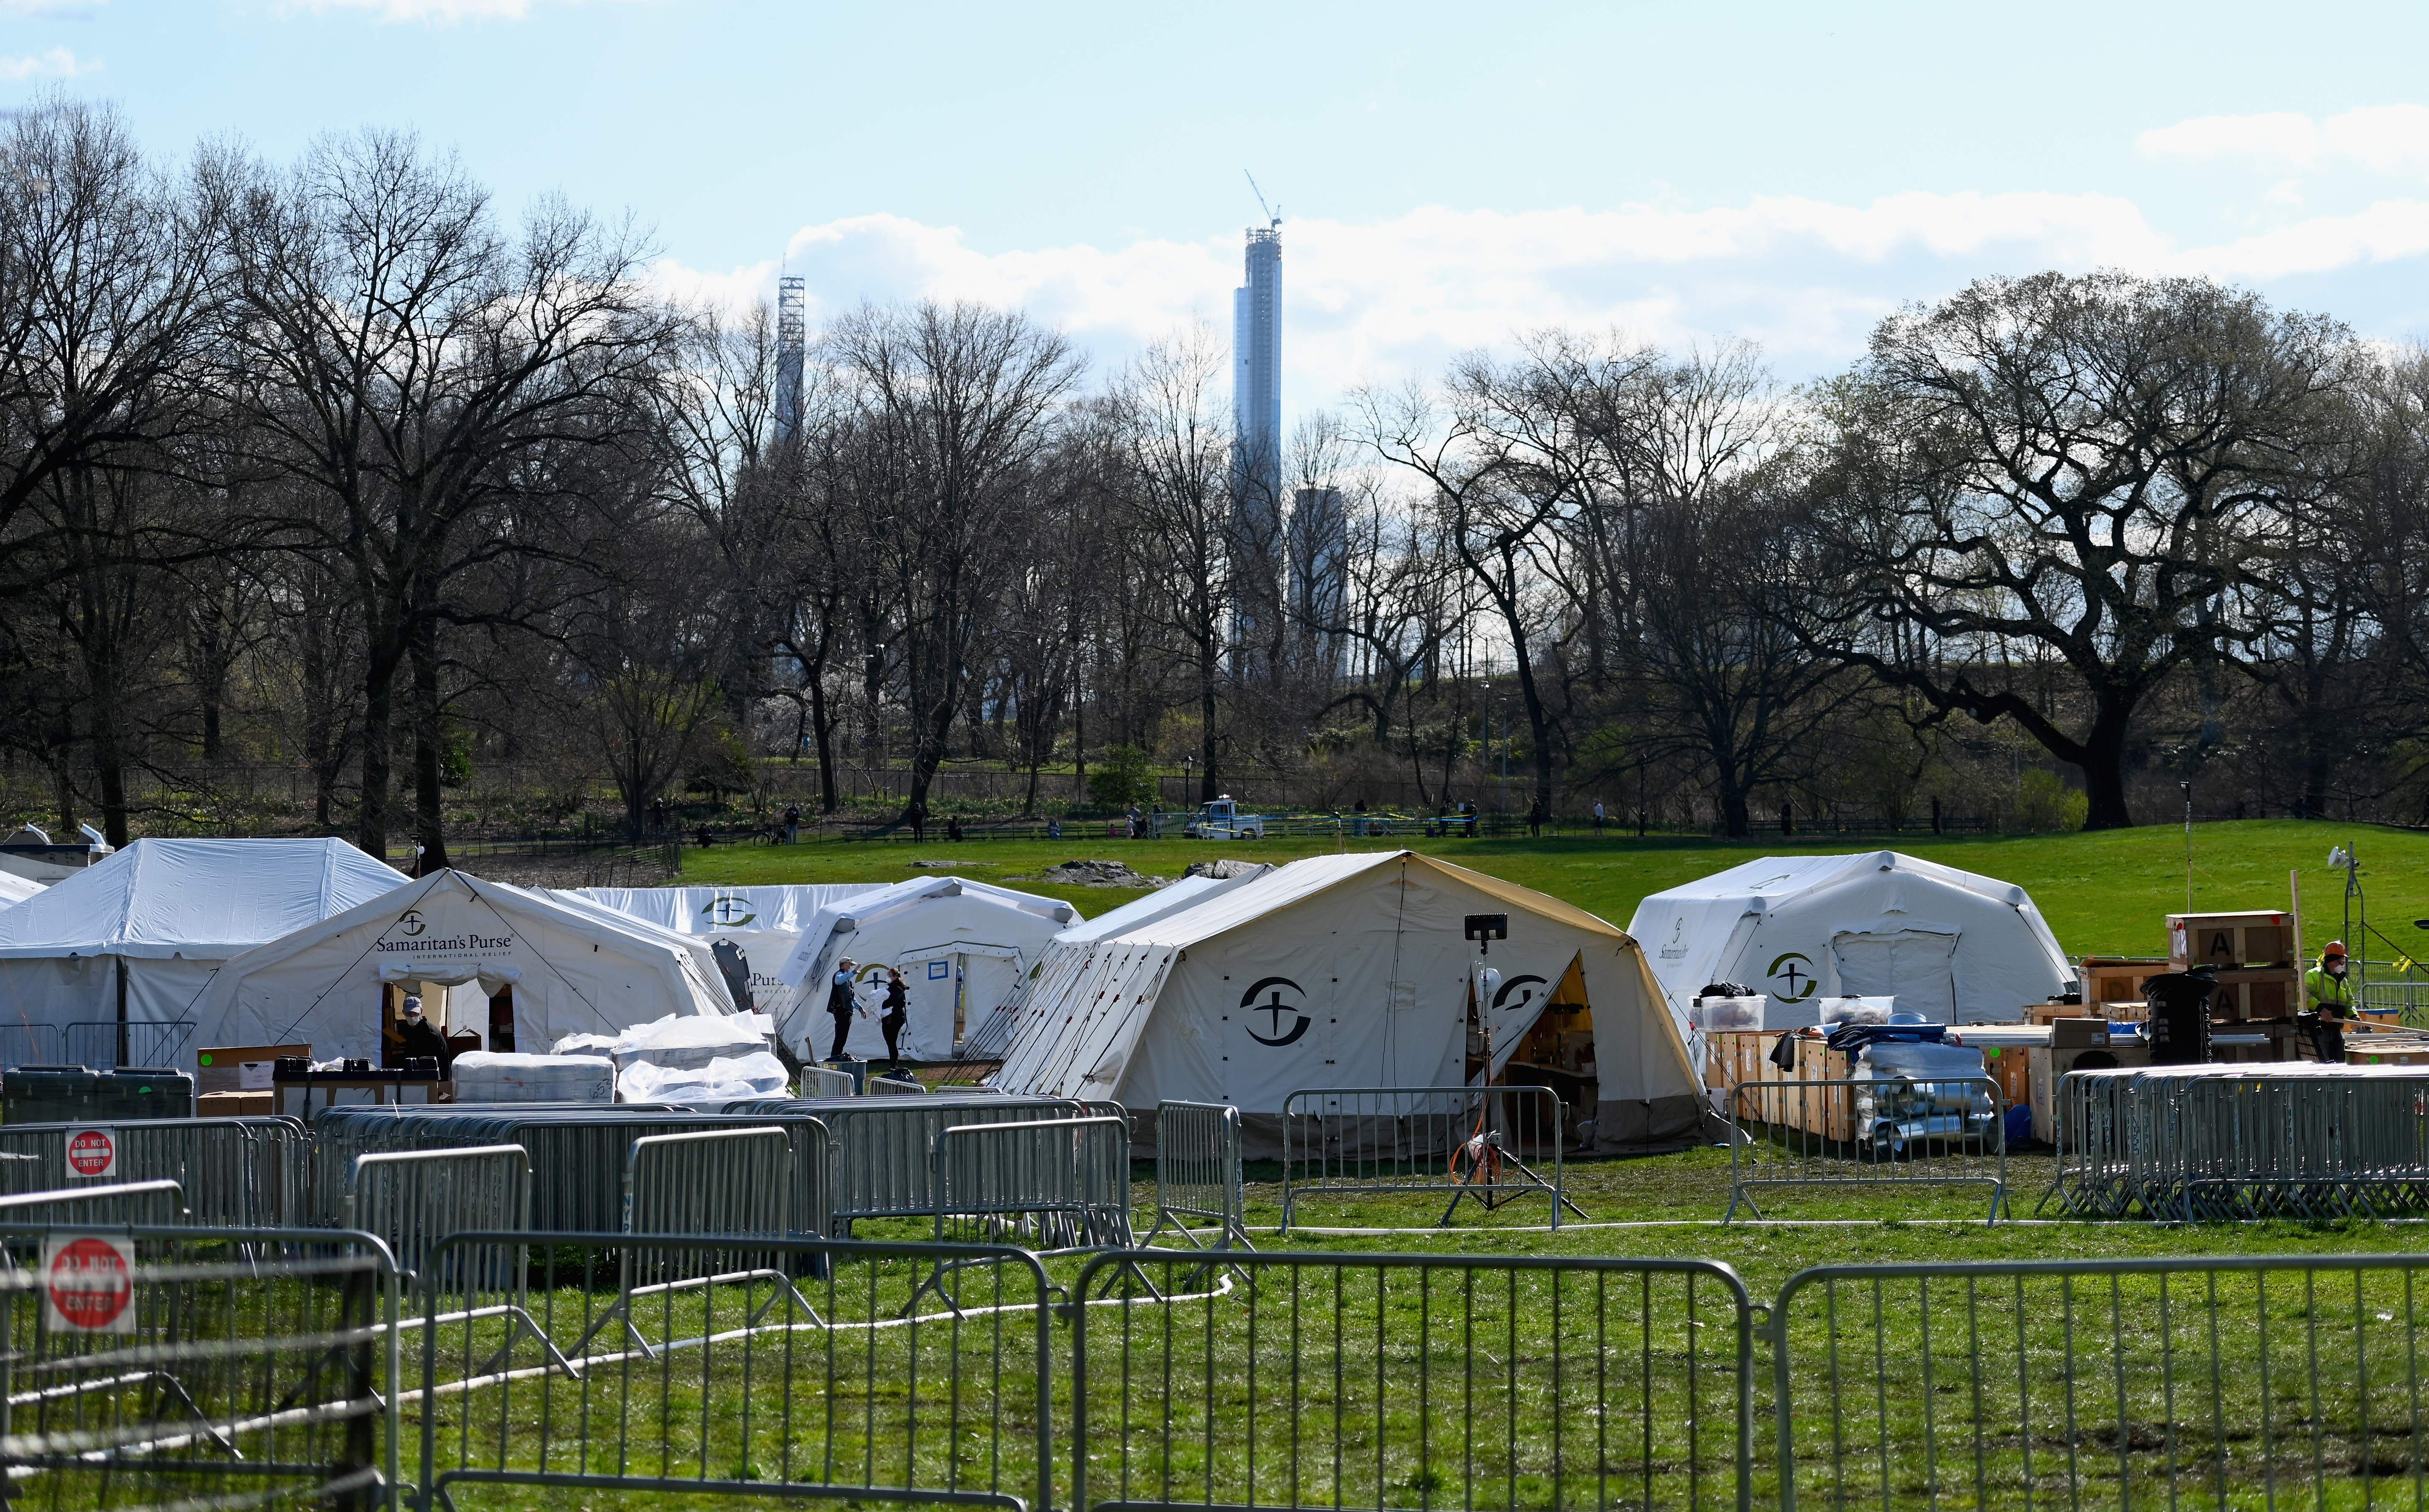 View of the International Christian relief organization Samaritans Purse Emergency Field Hospital in Central Park across Fifth Avenue from Mt. Sinai Hospital on April 1, 2020 in New York. (Photo by ANGELA WEISS/AFP via Getty Images)